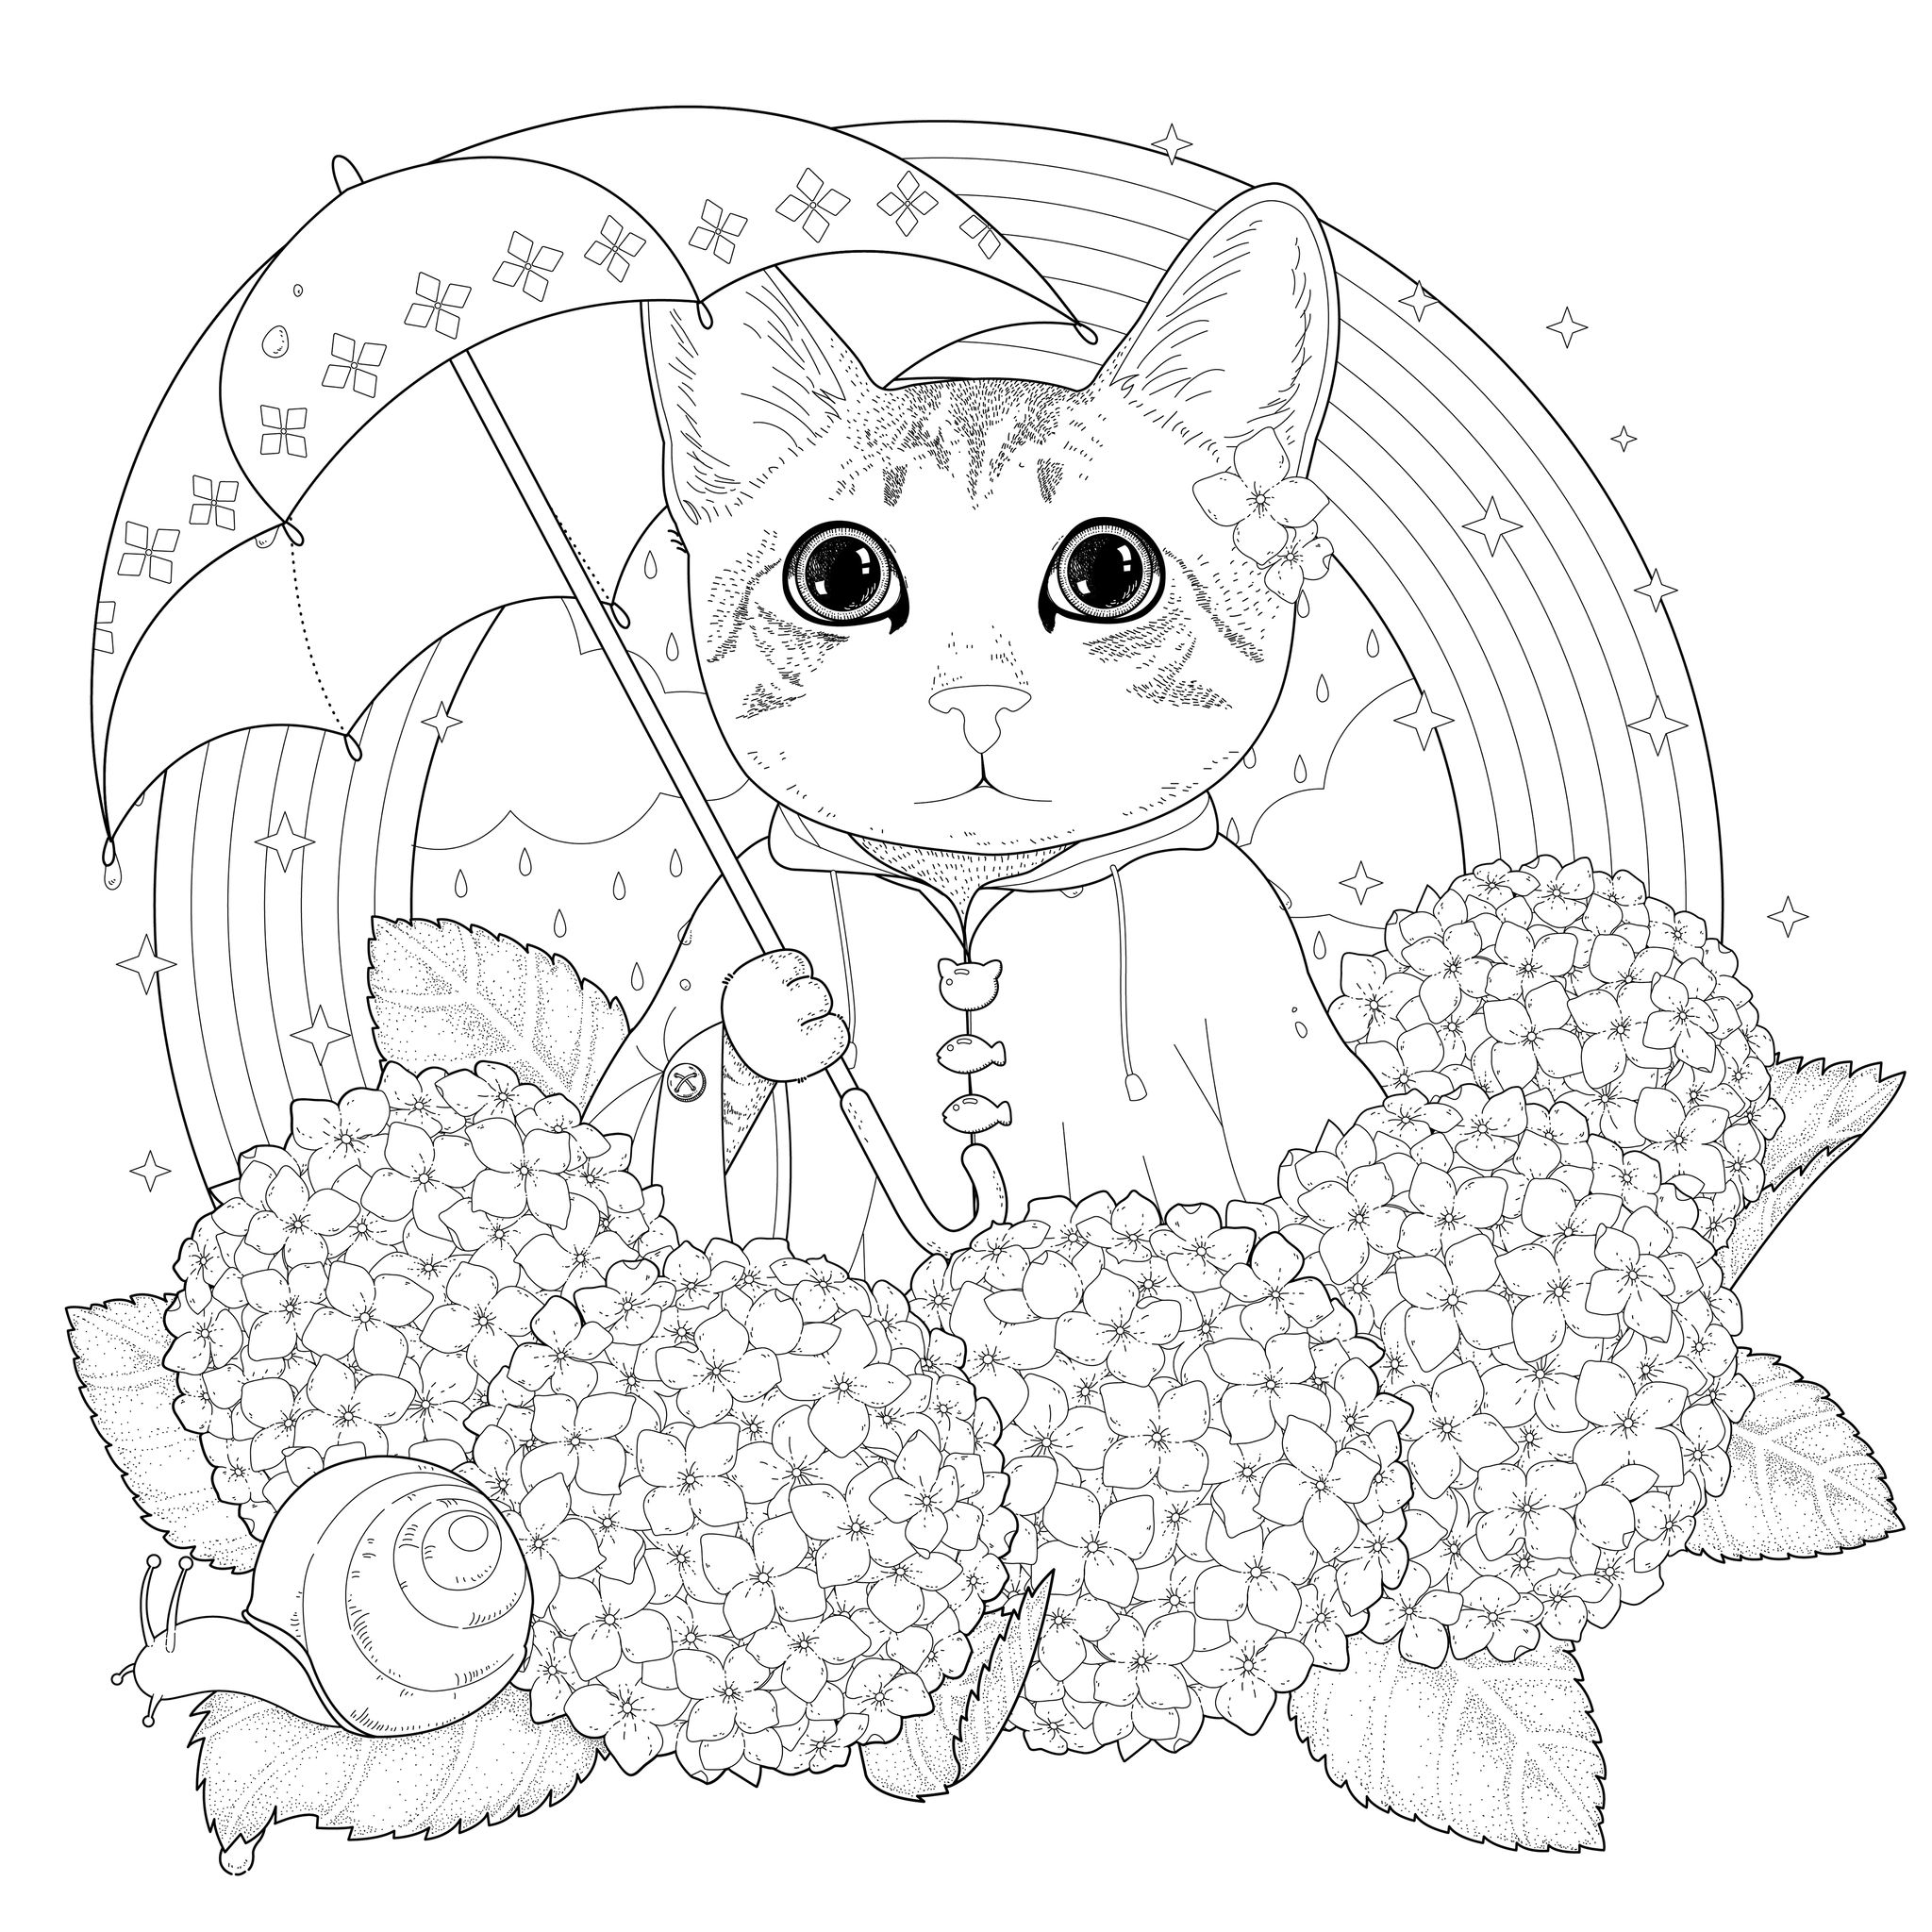 Cats - Coloring Pages for Adults